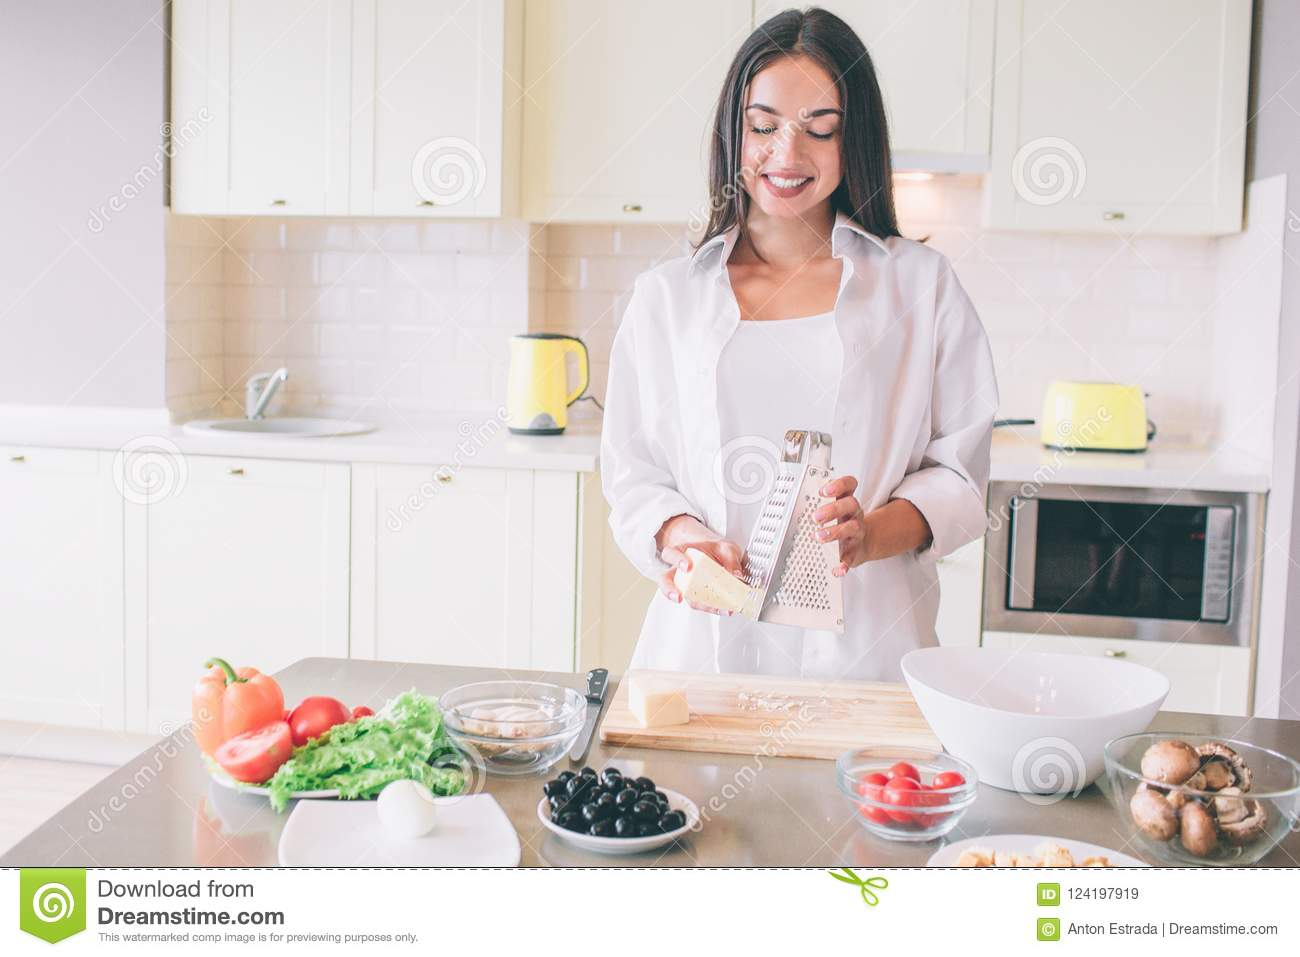 A picture of happy girl grating cheese on board. She looks down and smiles. There are plentty of fresh food on the table